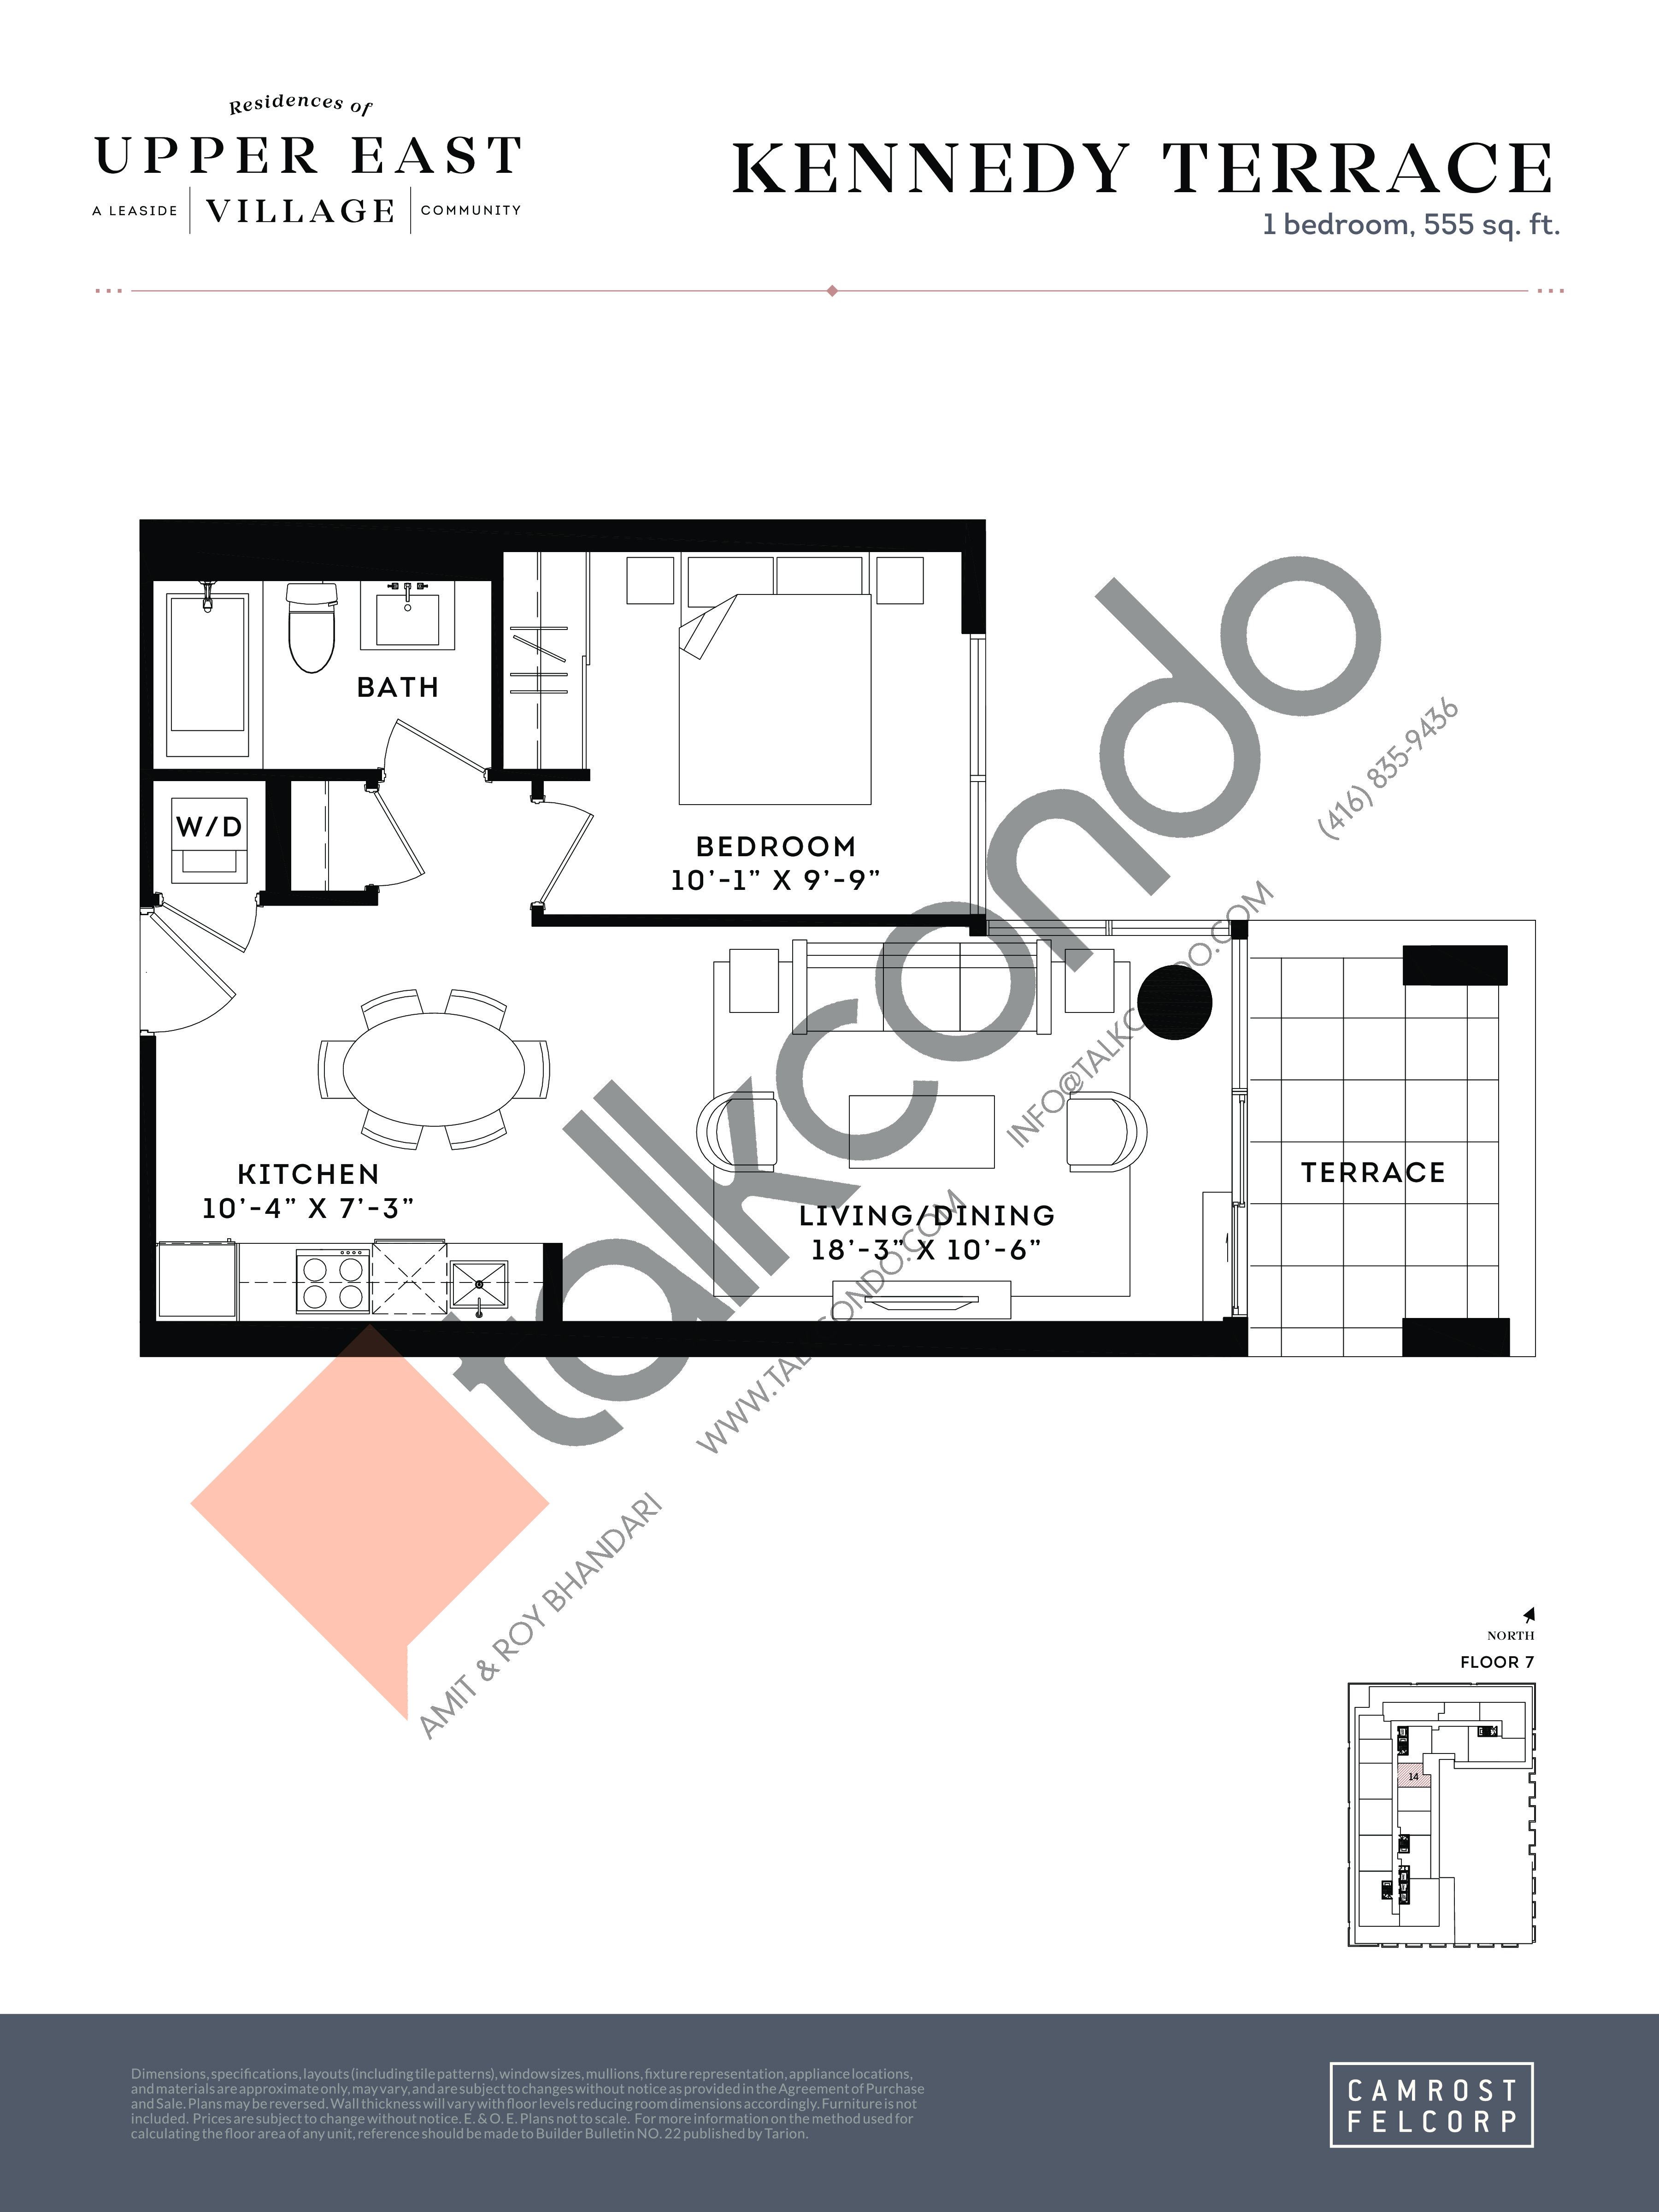 Kennedy Terrace Floor Plan at Upper East Village Condos - 555 sq.ft